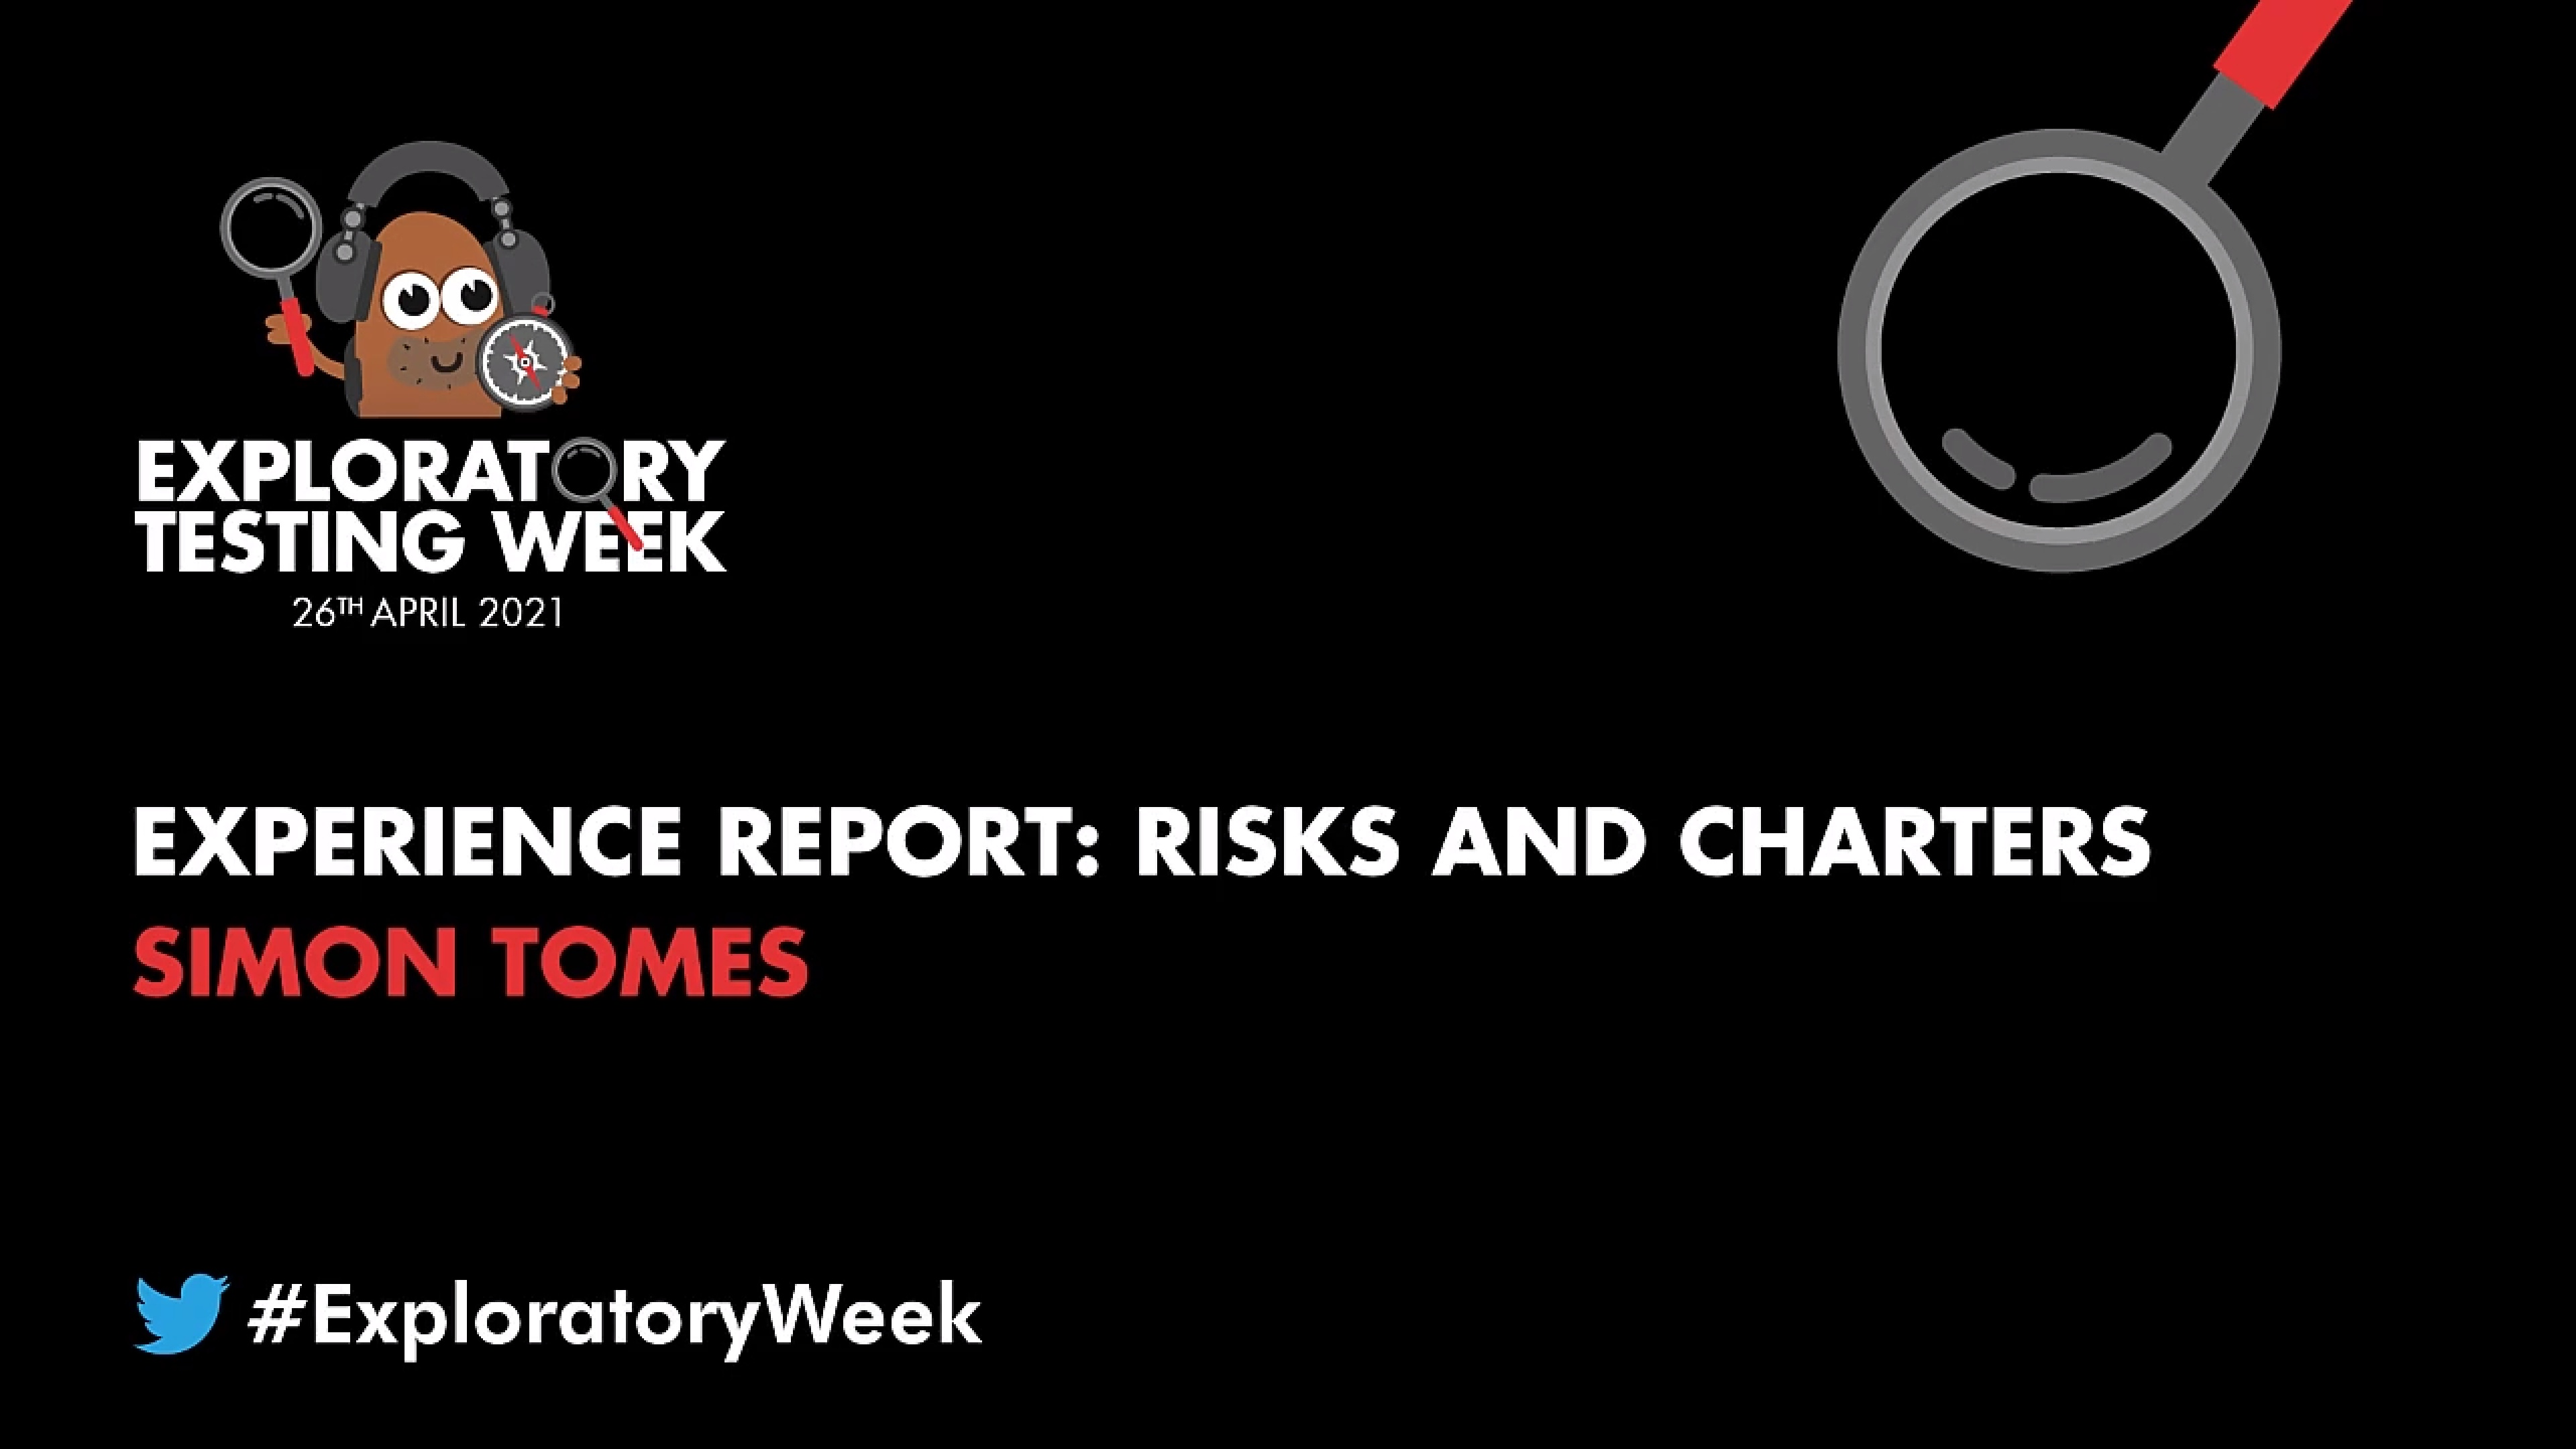 Experience Report: Risks and Charters with Simon Tomes